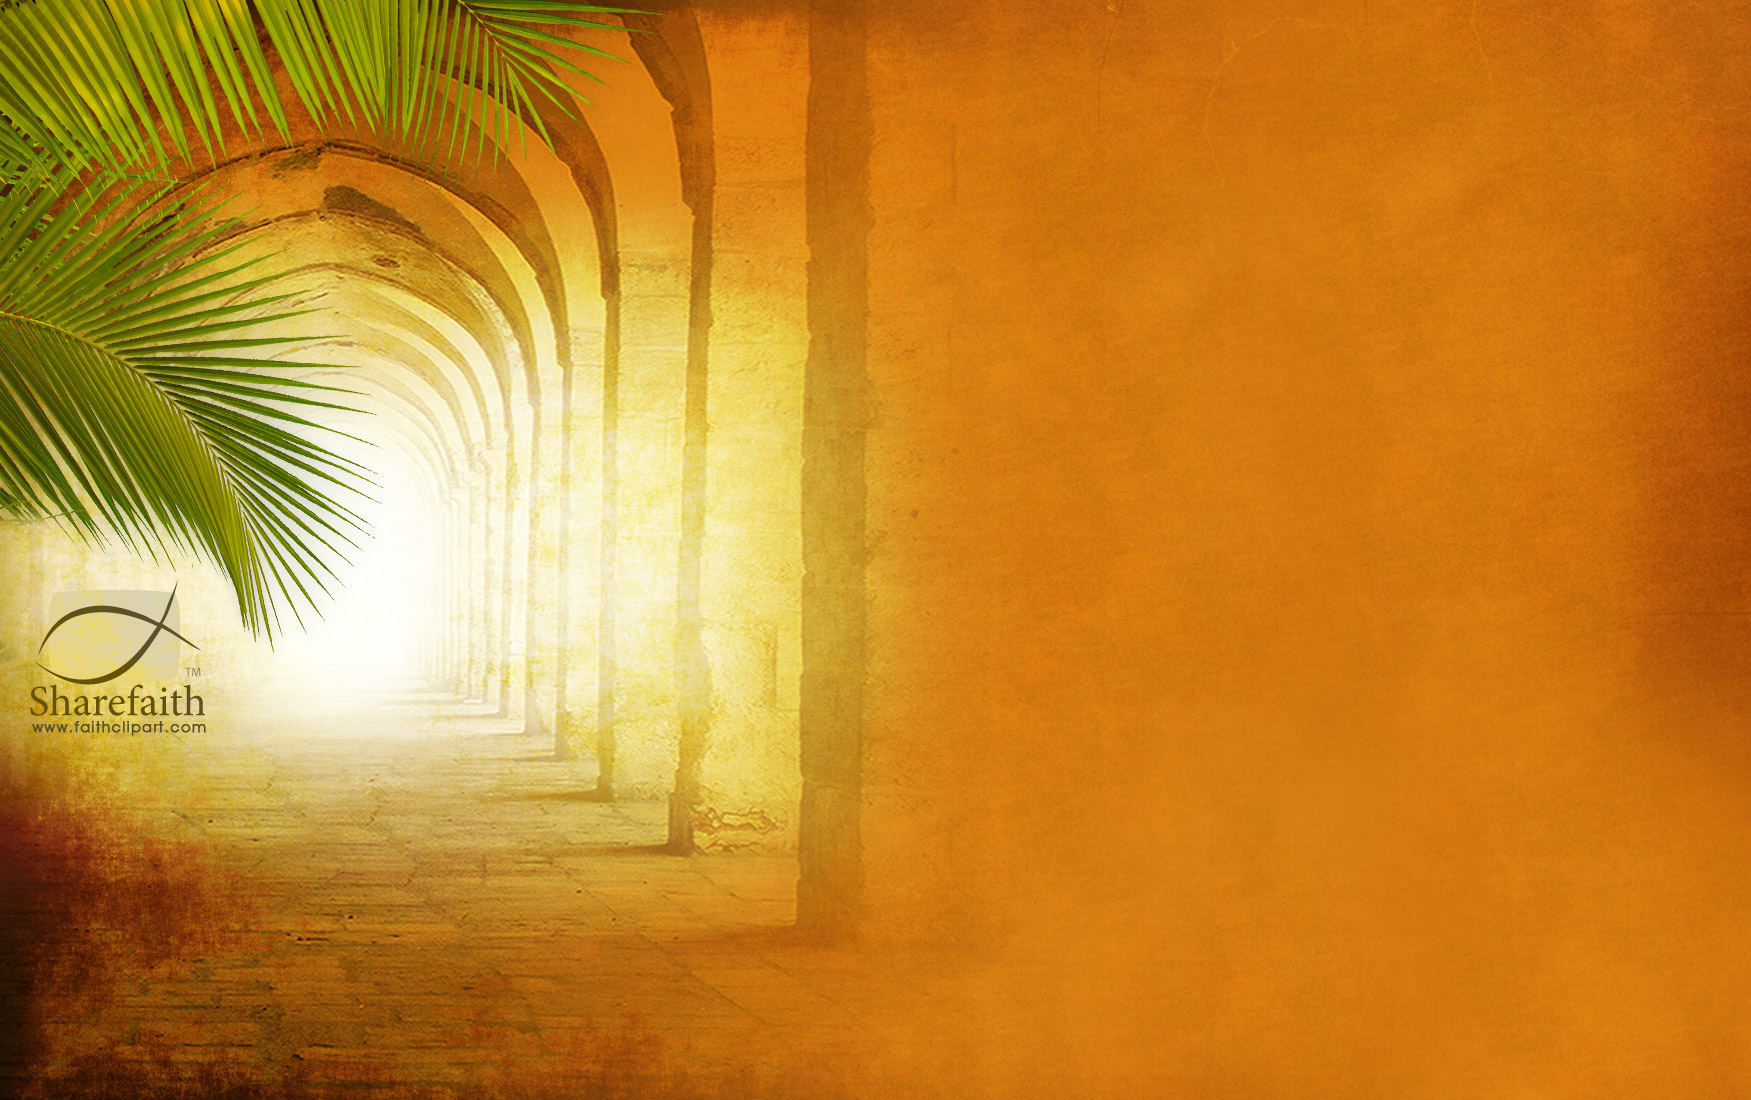 Free Christian Twitter Backgrounds.